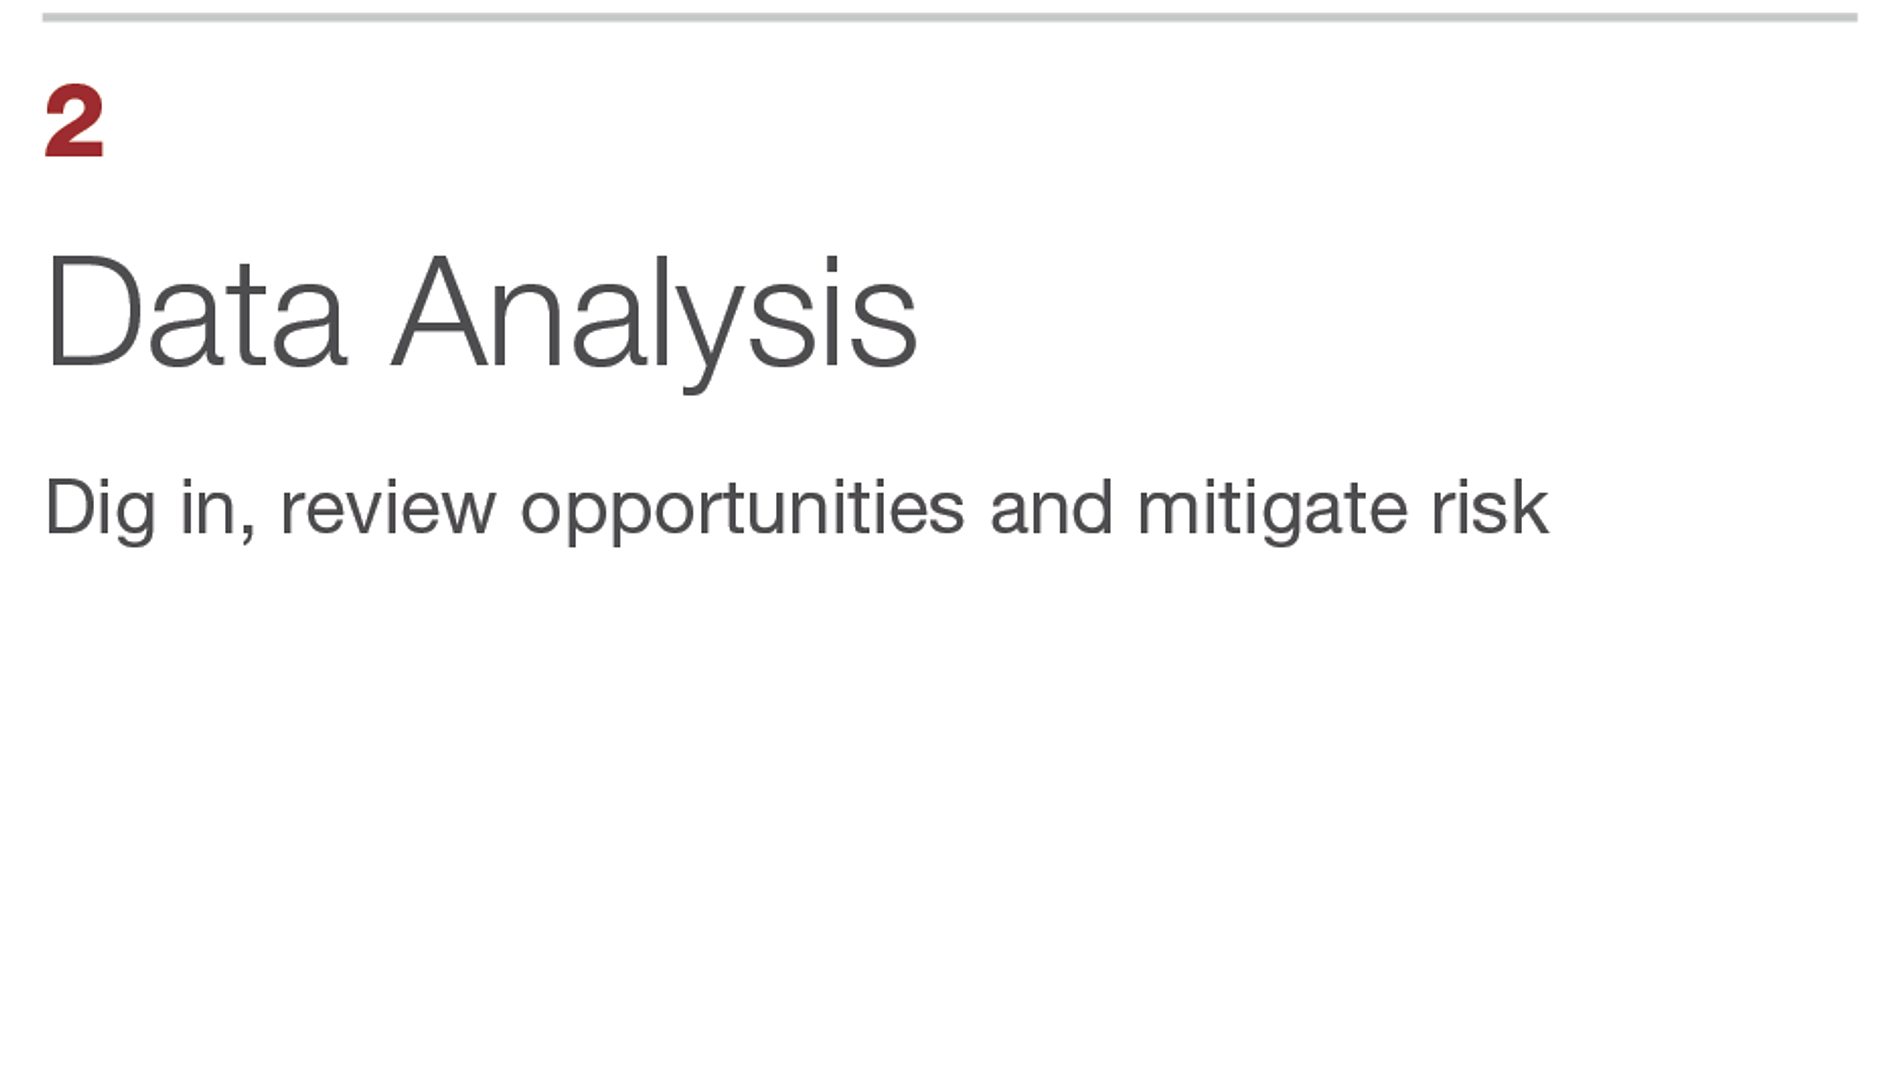 Data Analysis. Dig in, review opportunities and mitigate risk